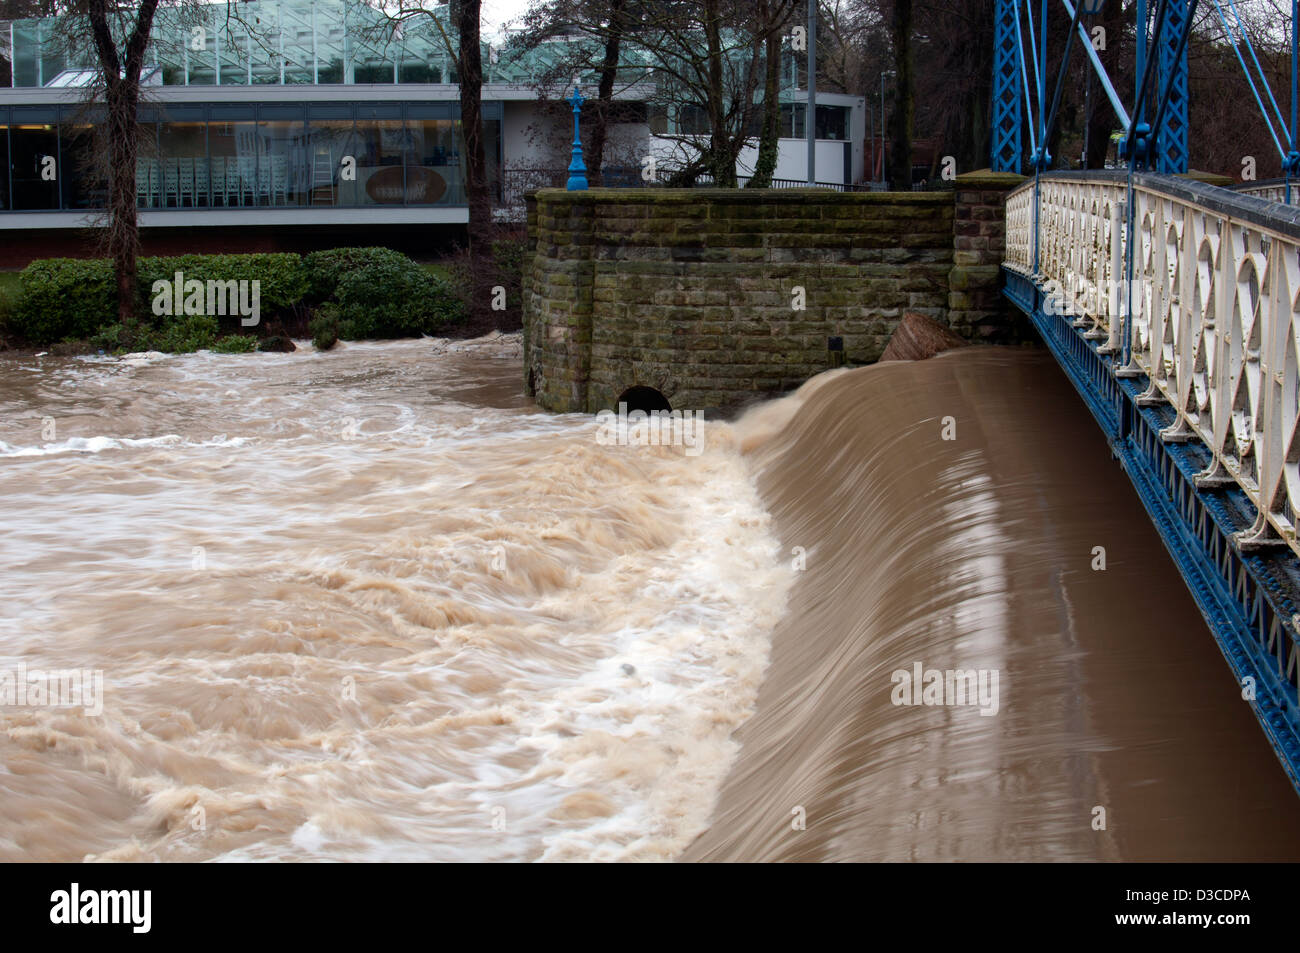 Mill Bridge and River Leam with floodwater, Leamington Spa, UK Stock Photo